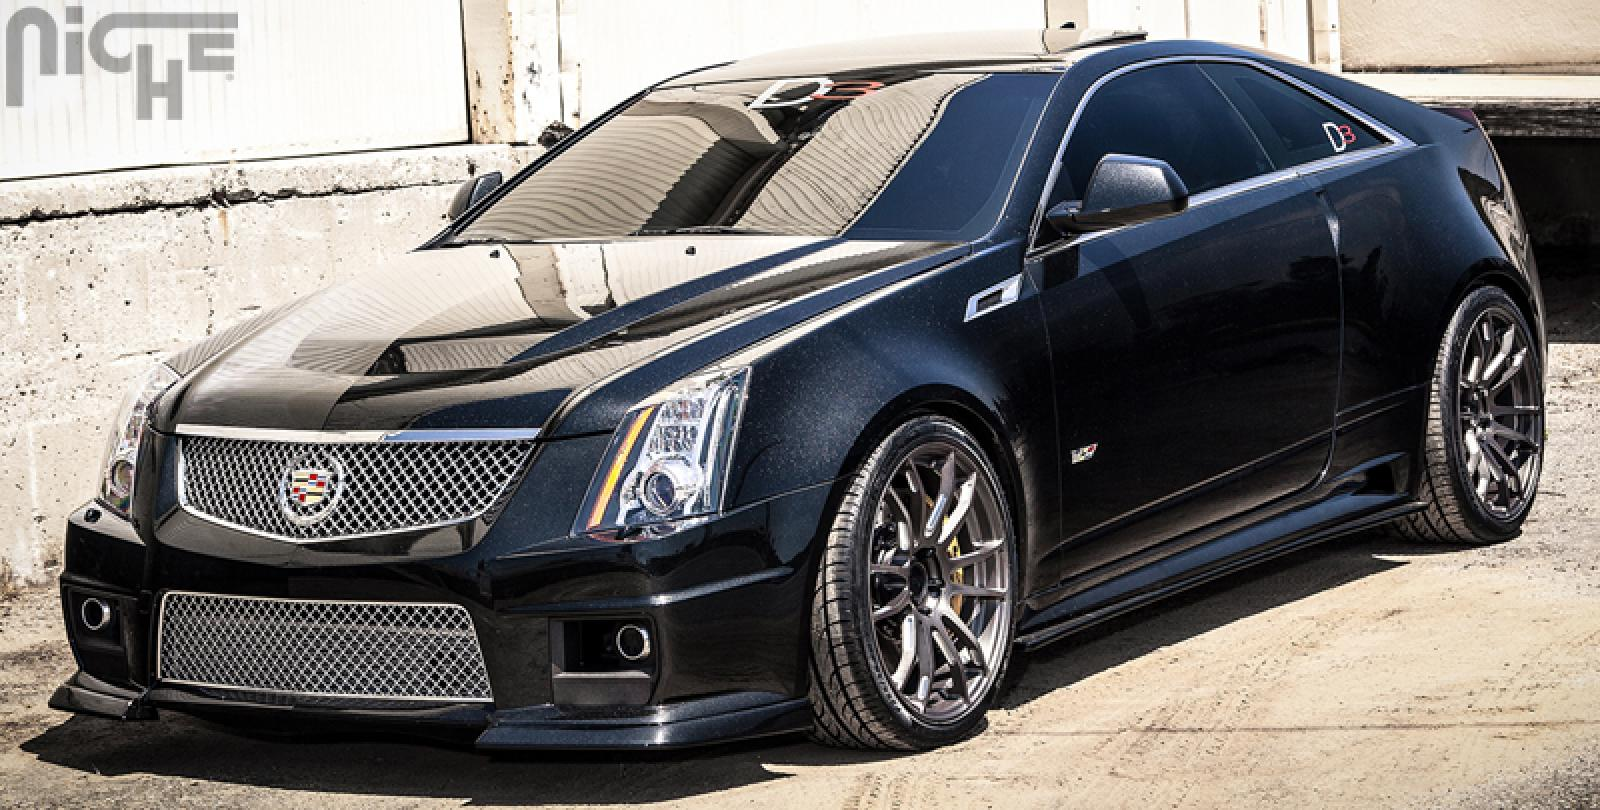 2009 cadillac cts v information and photos zombiedrive. Black Bedroom Furniture Sets. Home Design Ideas